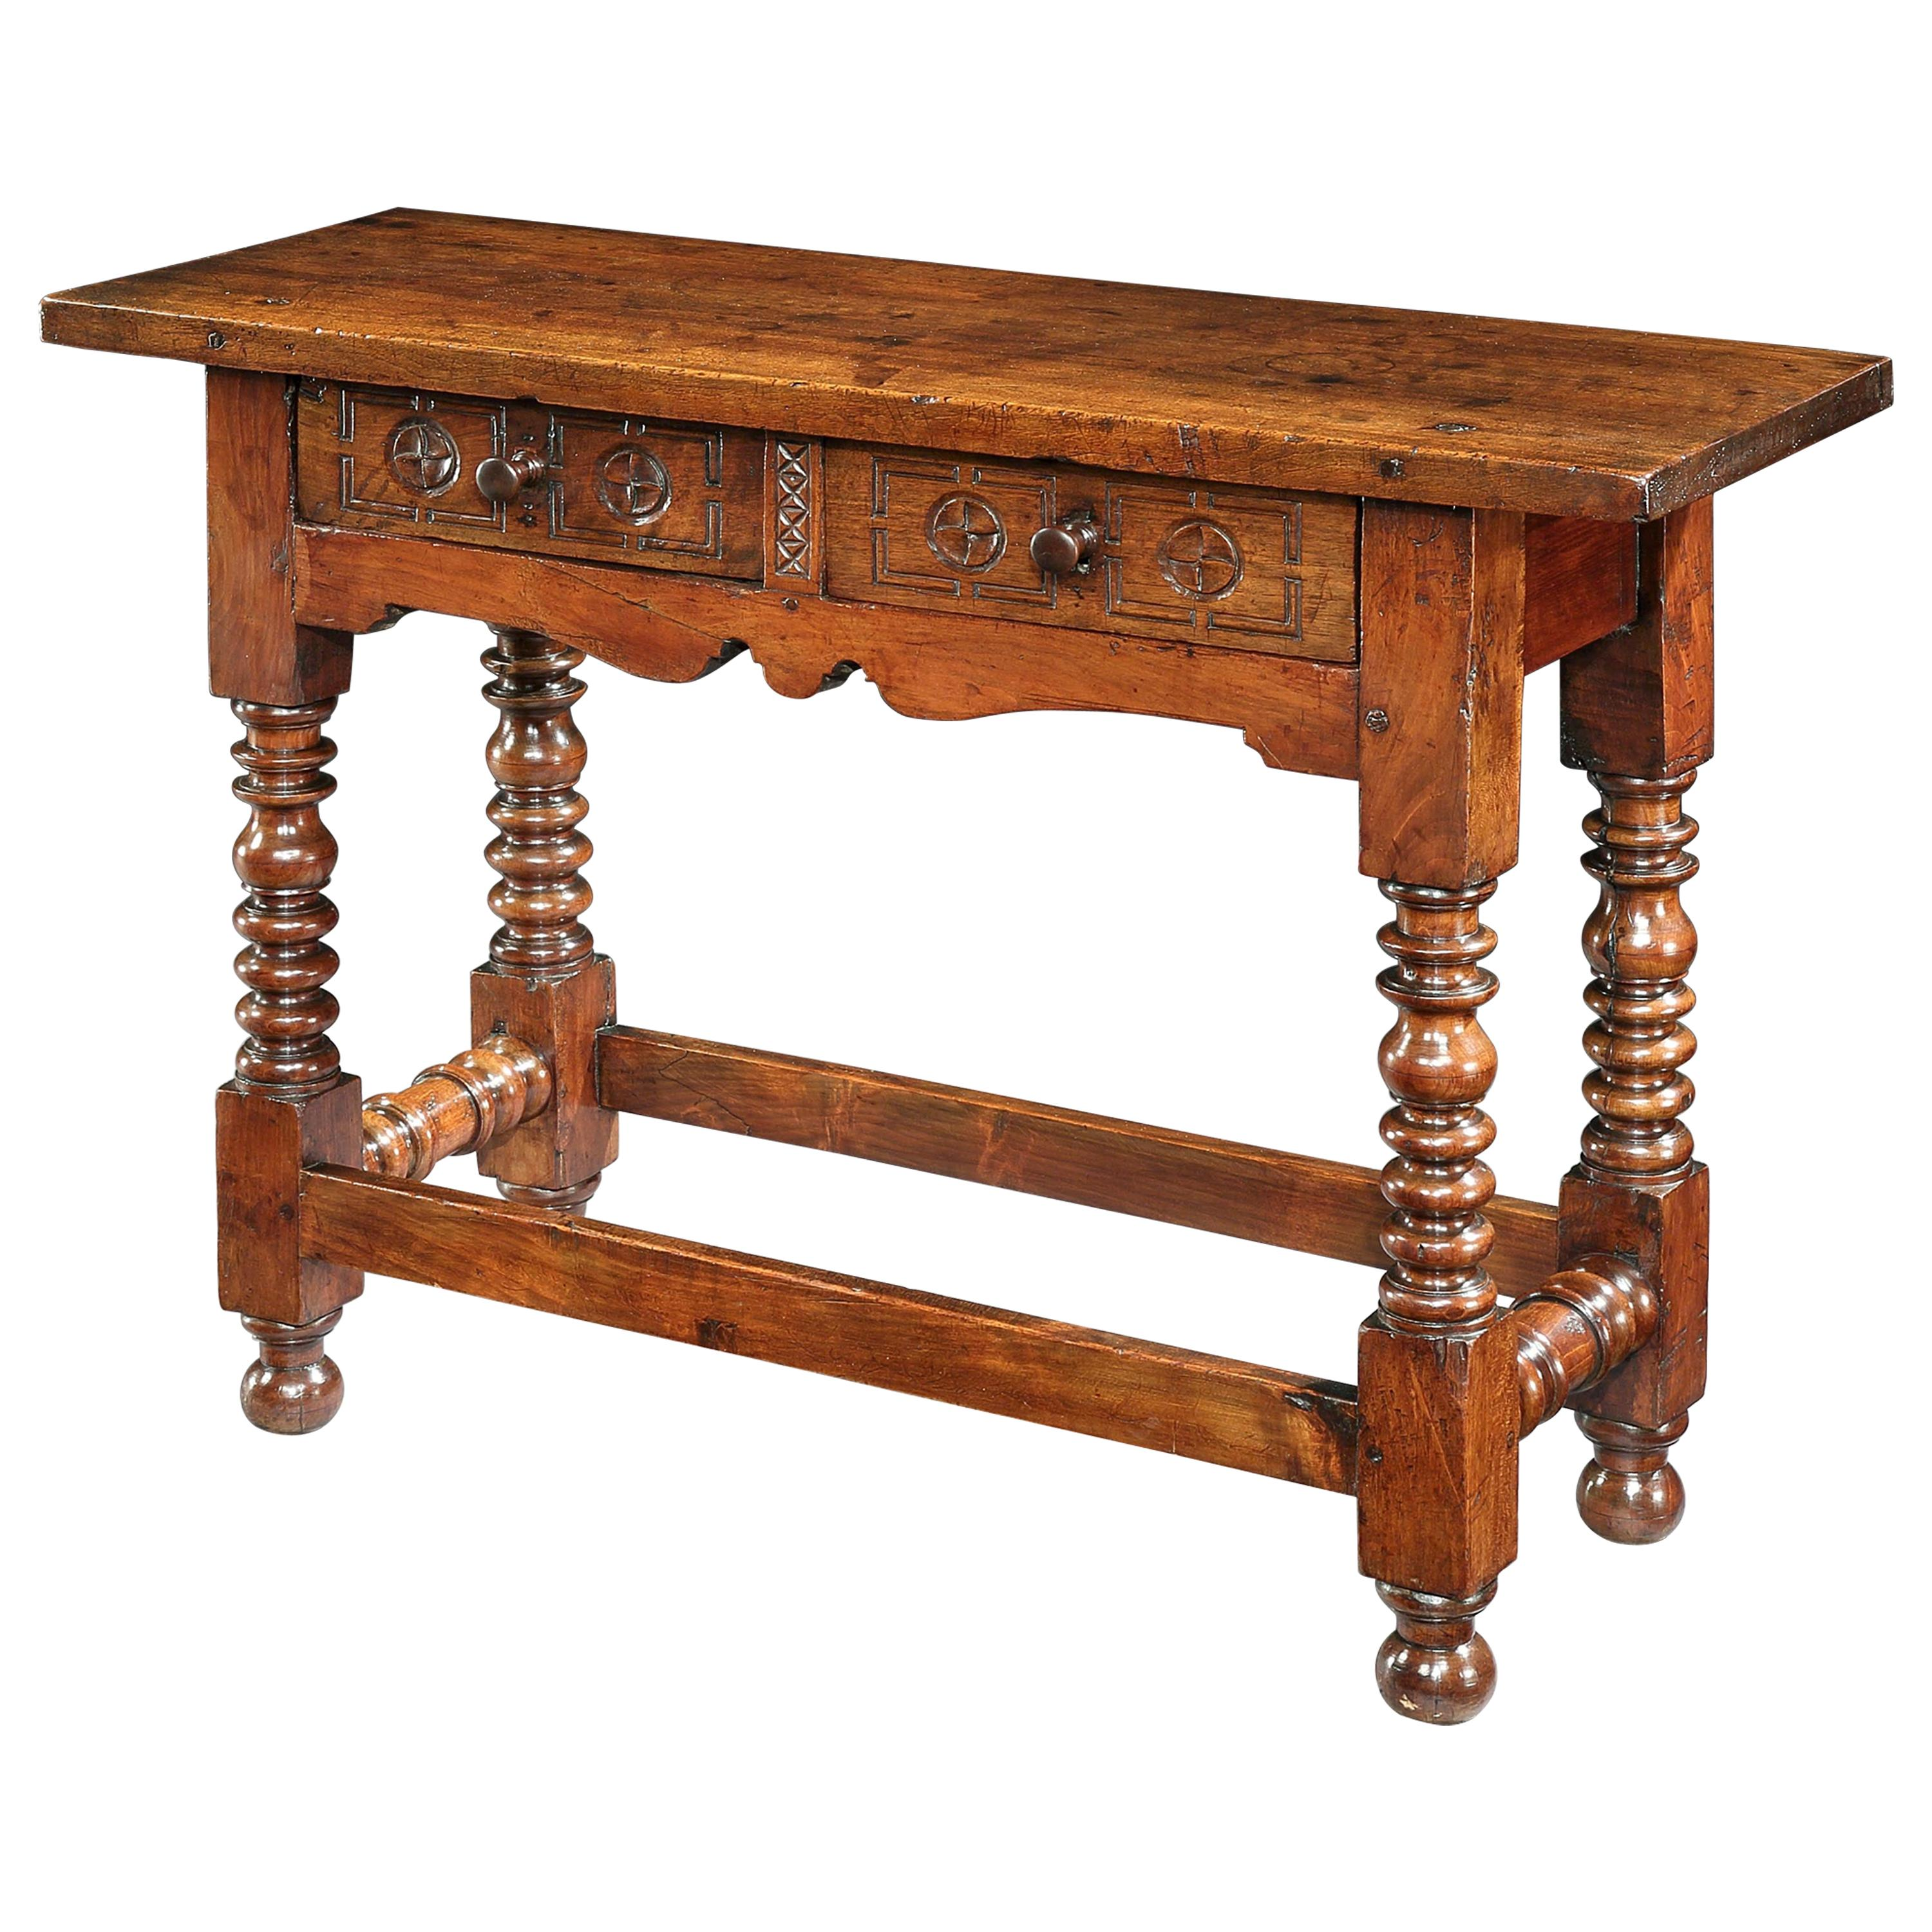 Table, Side Table, Console, 17th Century, Spanish, Baroque, Walnut, Chip Carving